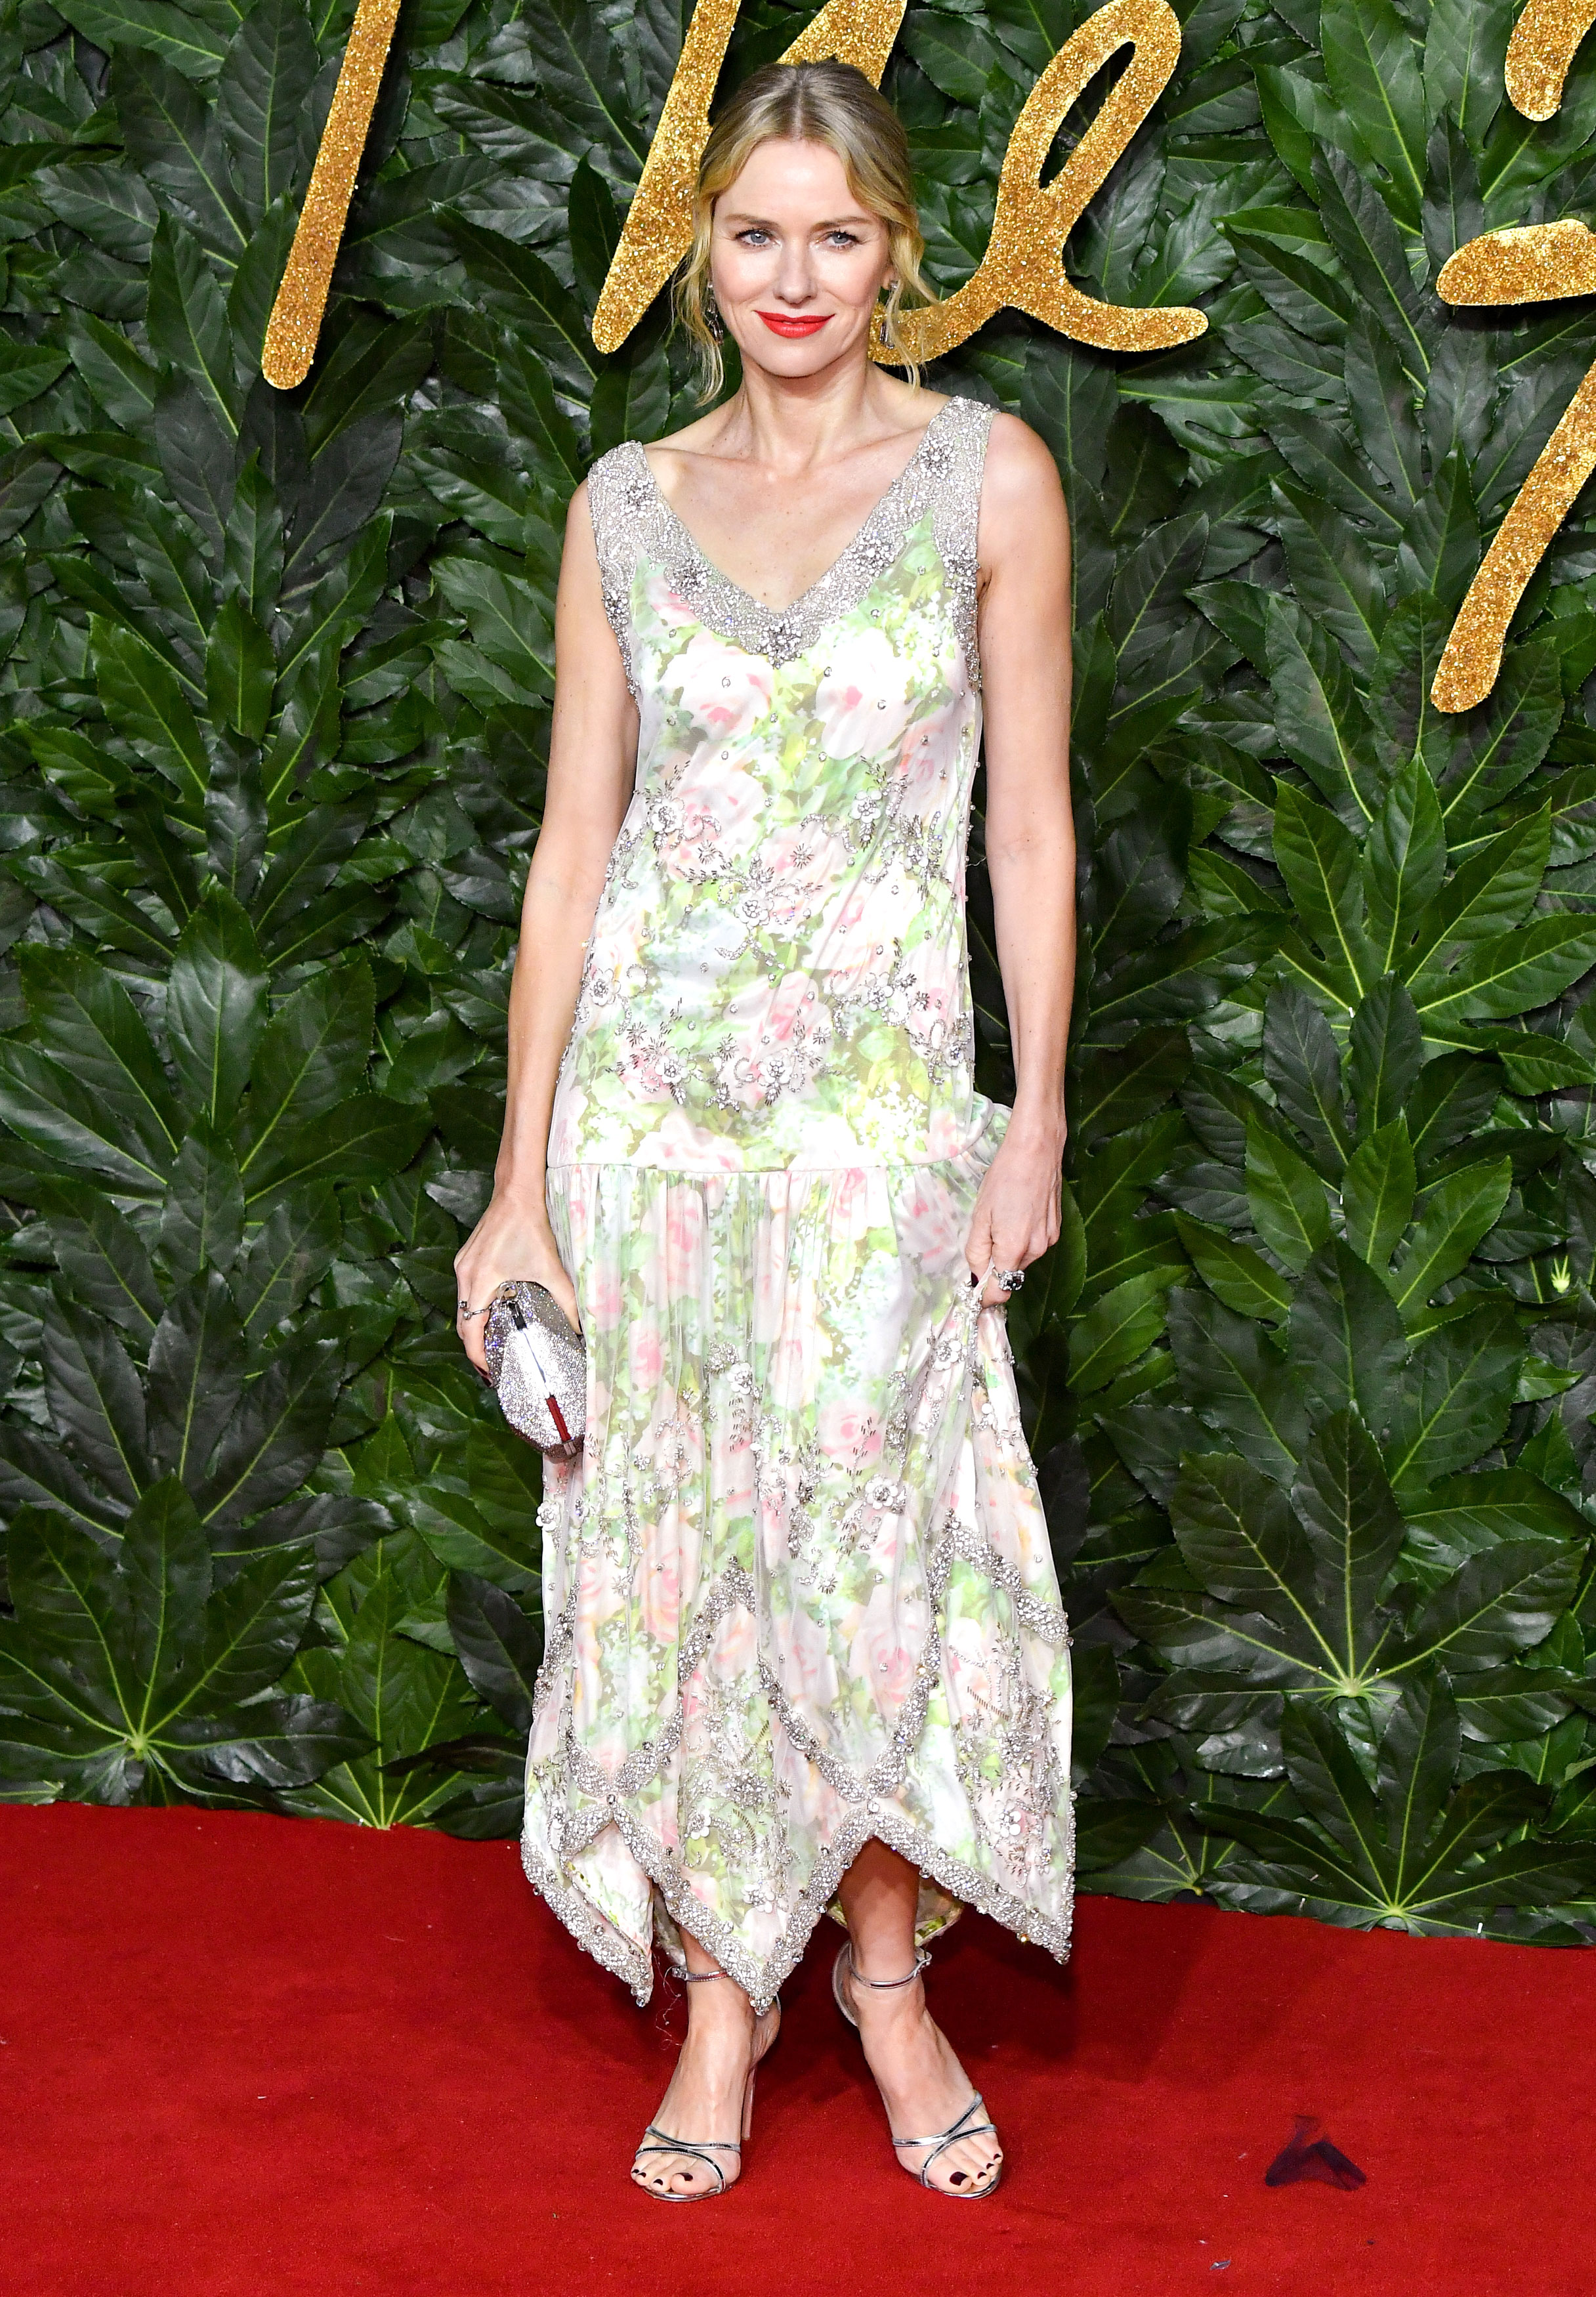 Naomie-Watts - A garden party IRL, the actress stunned in a floral-print Richard Quinn frock and Awarovski jewels.